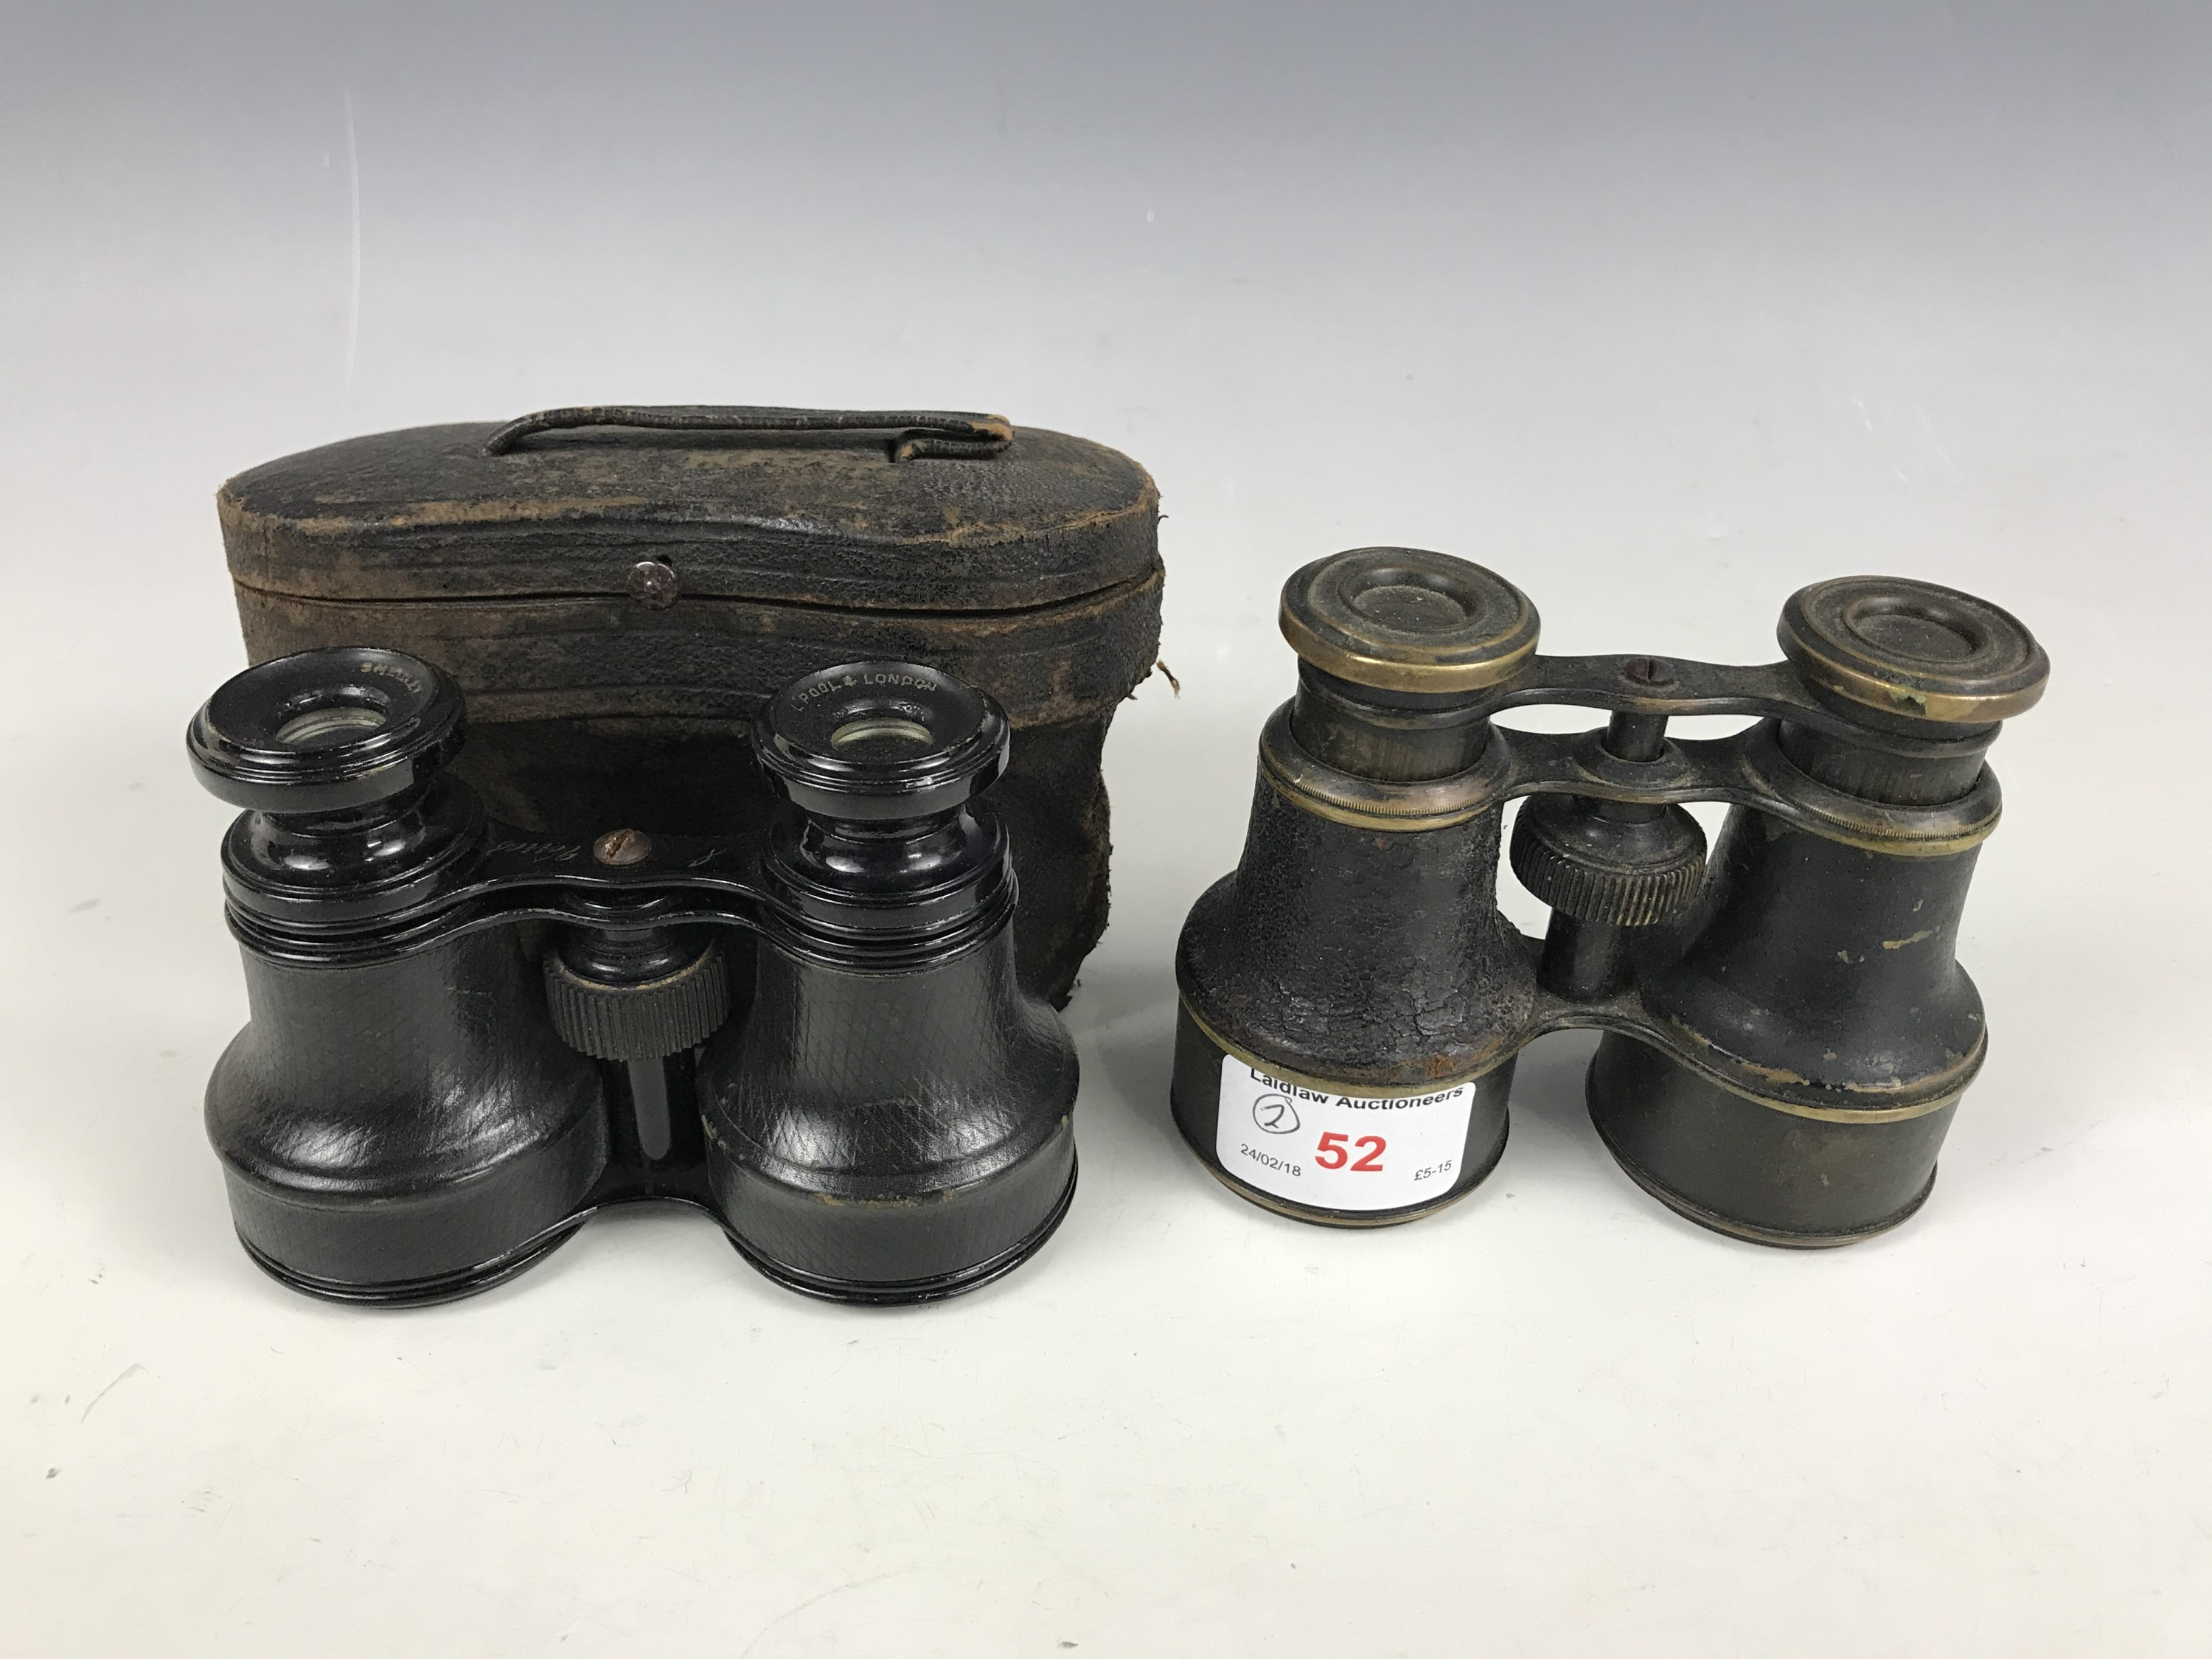 Lot 52 - Two sets of late 19th Century opera / field glasses (one a/f)